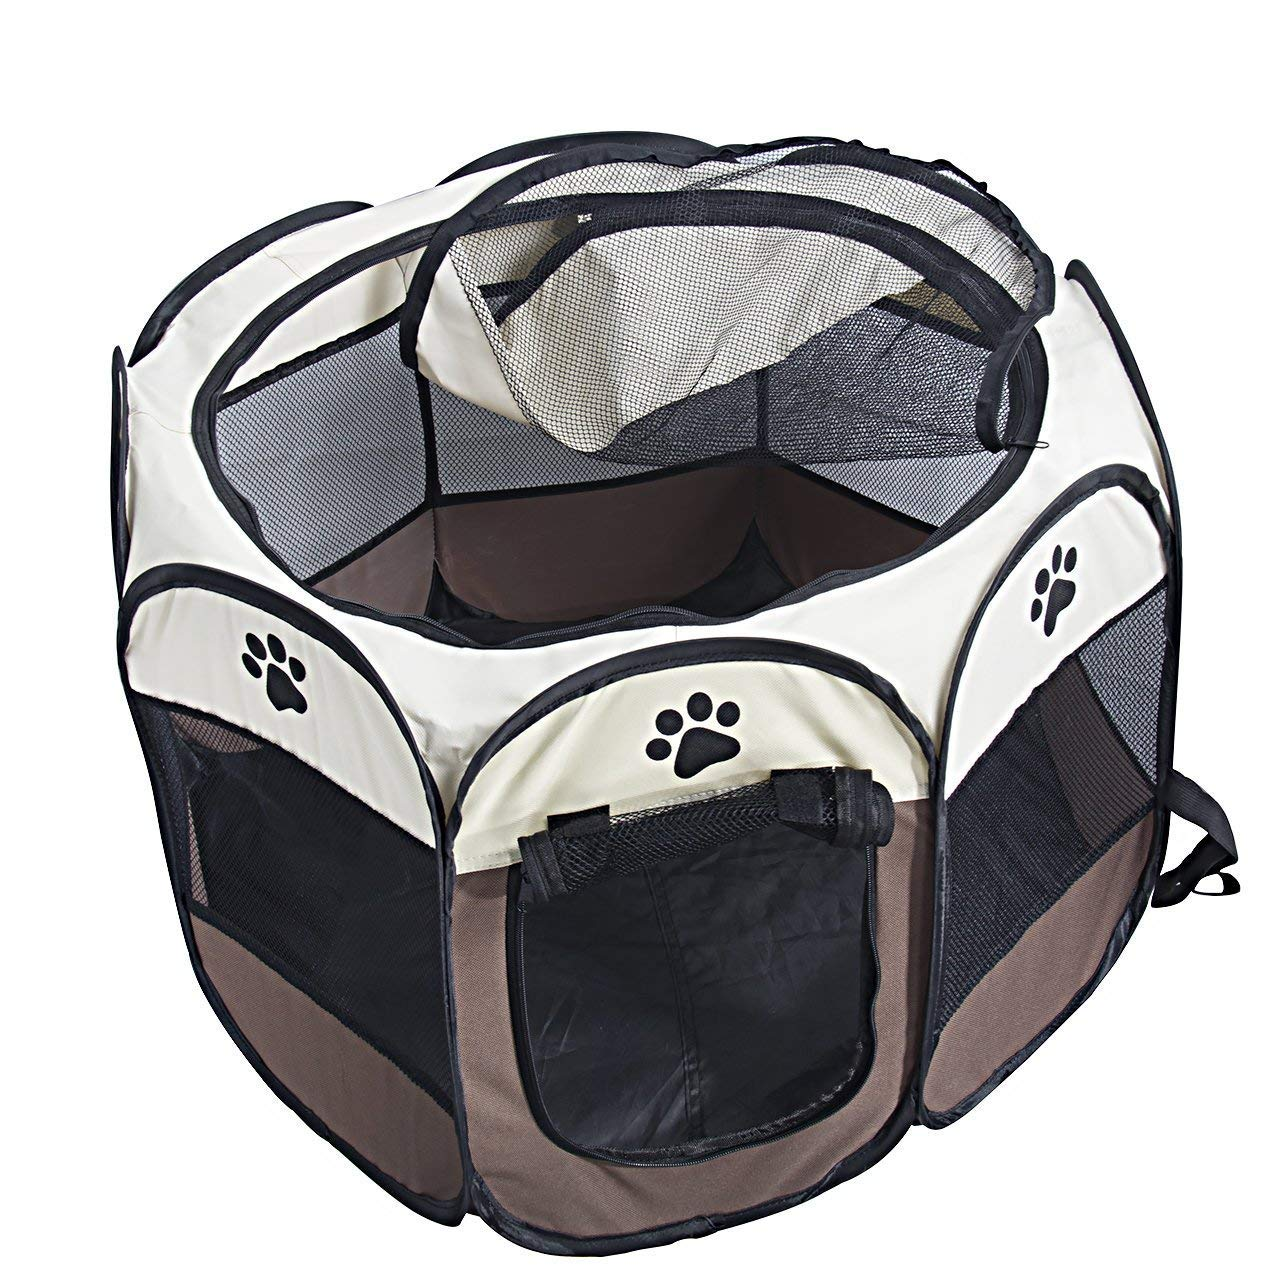 Brown SMOIMK Pet Portable Foldable Playpen, Exercise 8Panel Kennel Mesh Shade Cover Indoor Outdoor Tent Fence For Dogs Cats